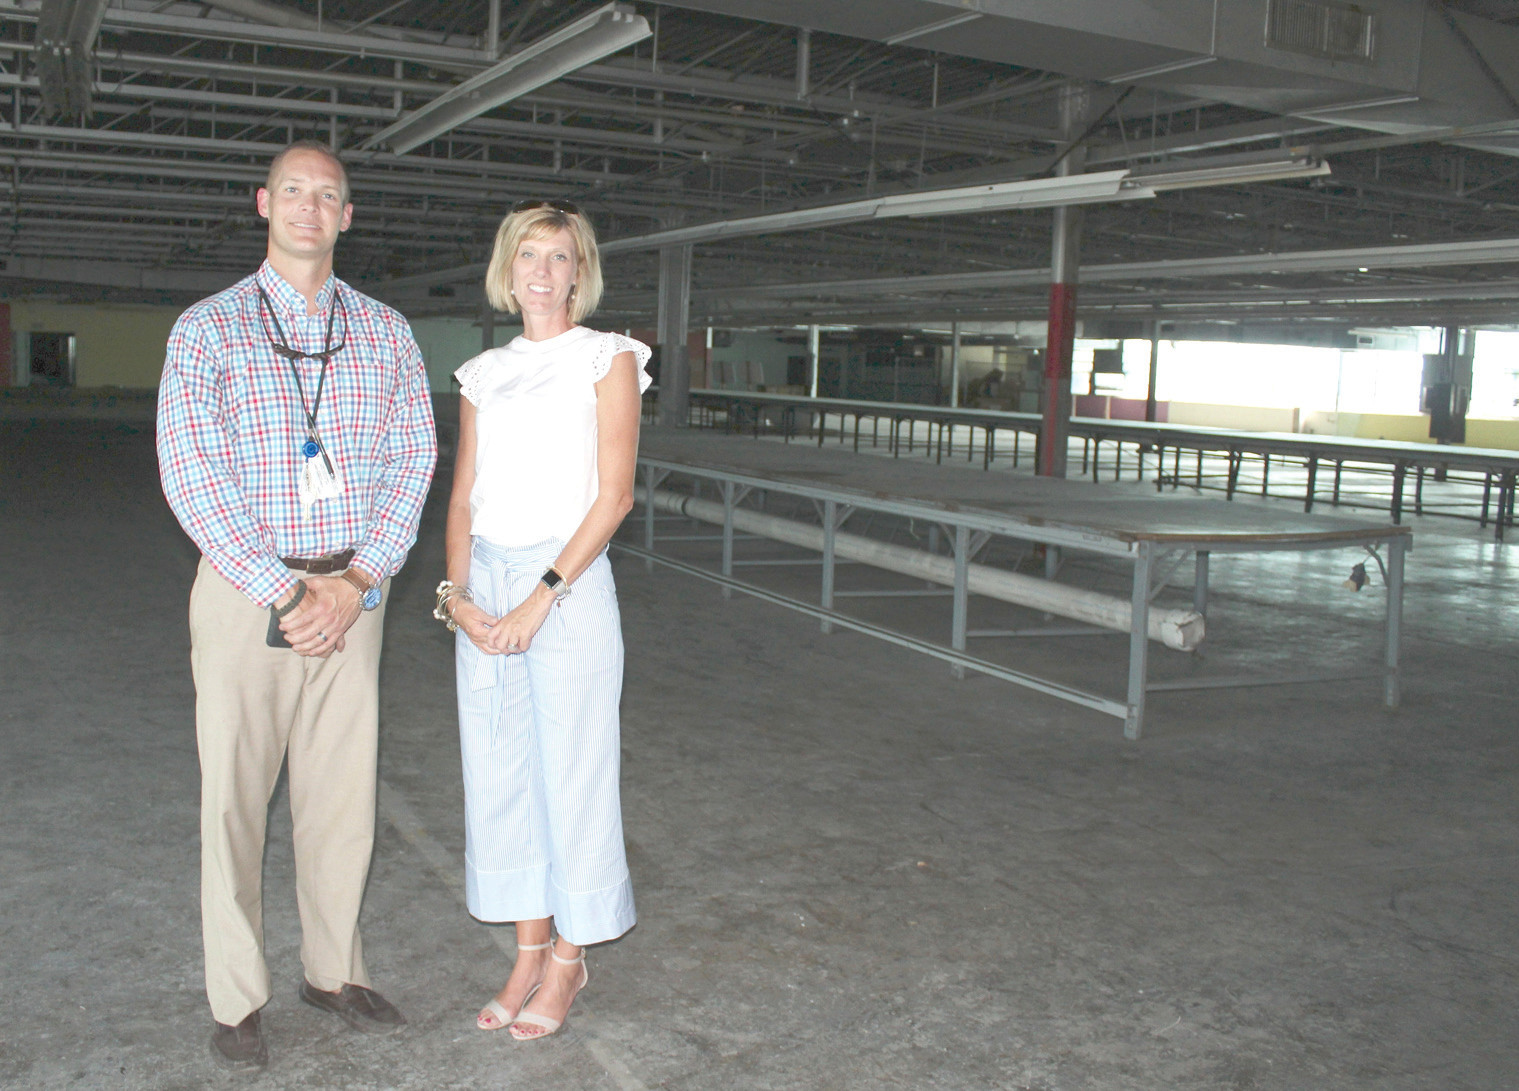 THE POSSIBILITIES of the old American Uniform manufacturing facility have Kyle Page, principal of GOAL Academy and the facility's project manager, and Brittany Cannon, work-based learning coordinator for Bradley County Schools, seeing its expansive rooms as more than just empty space.